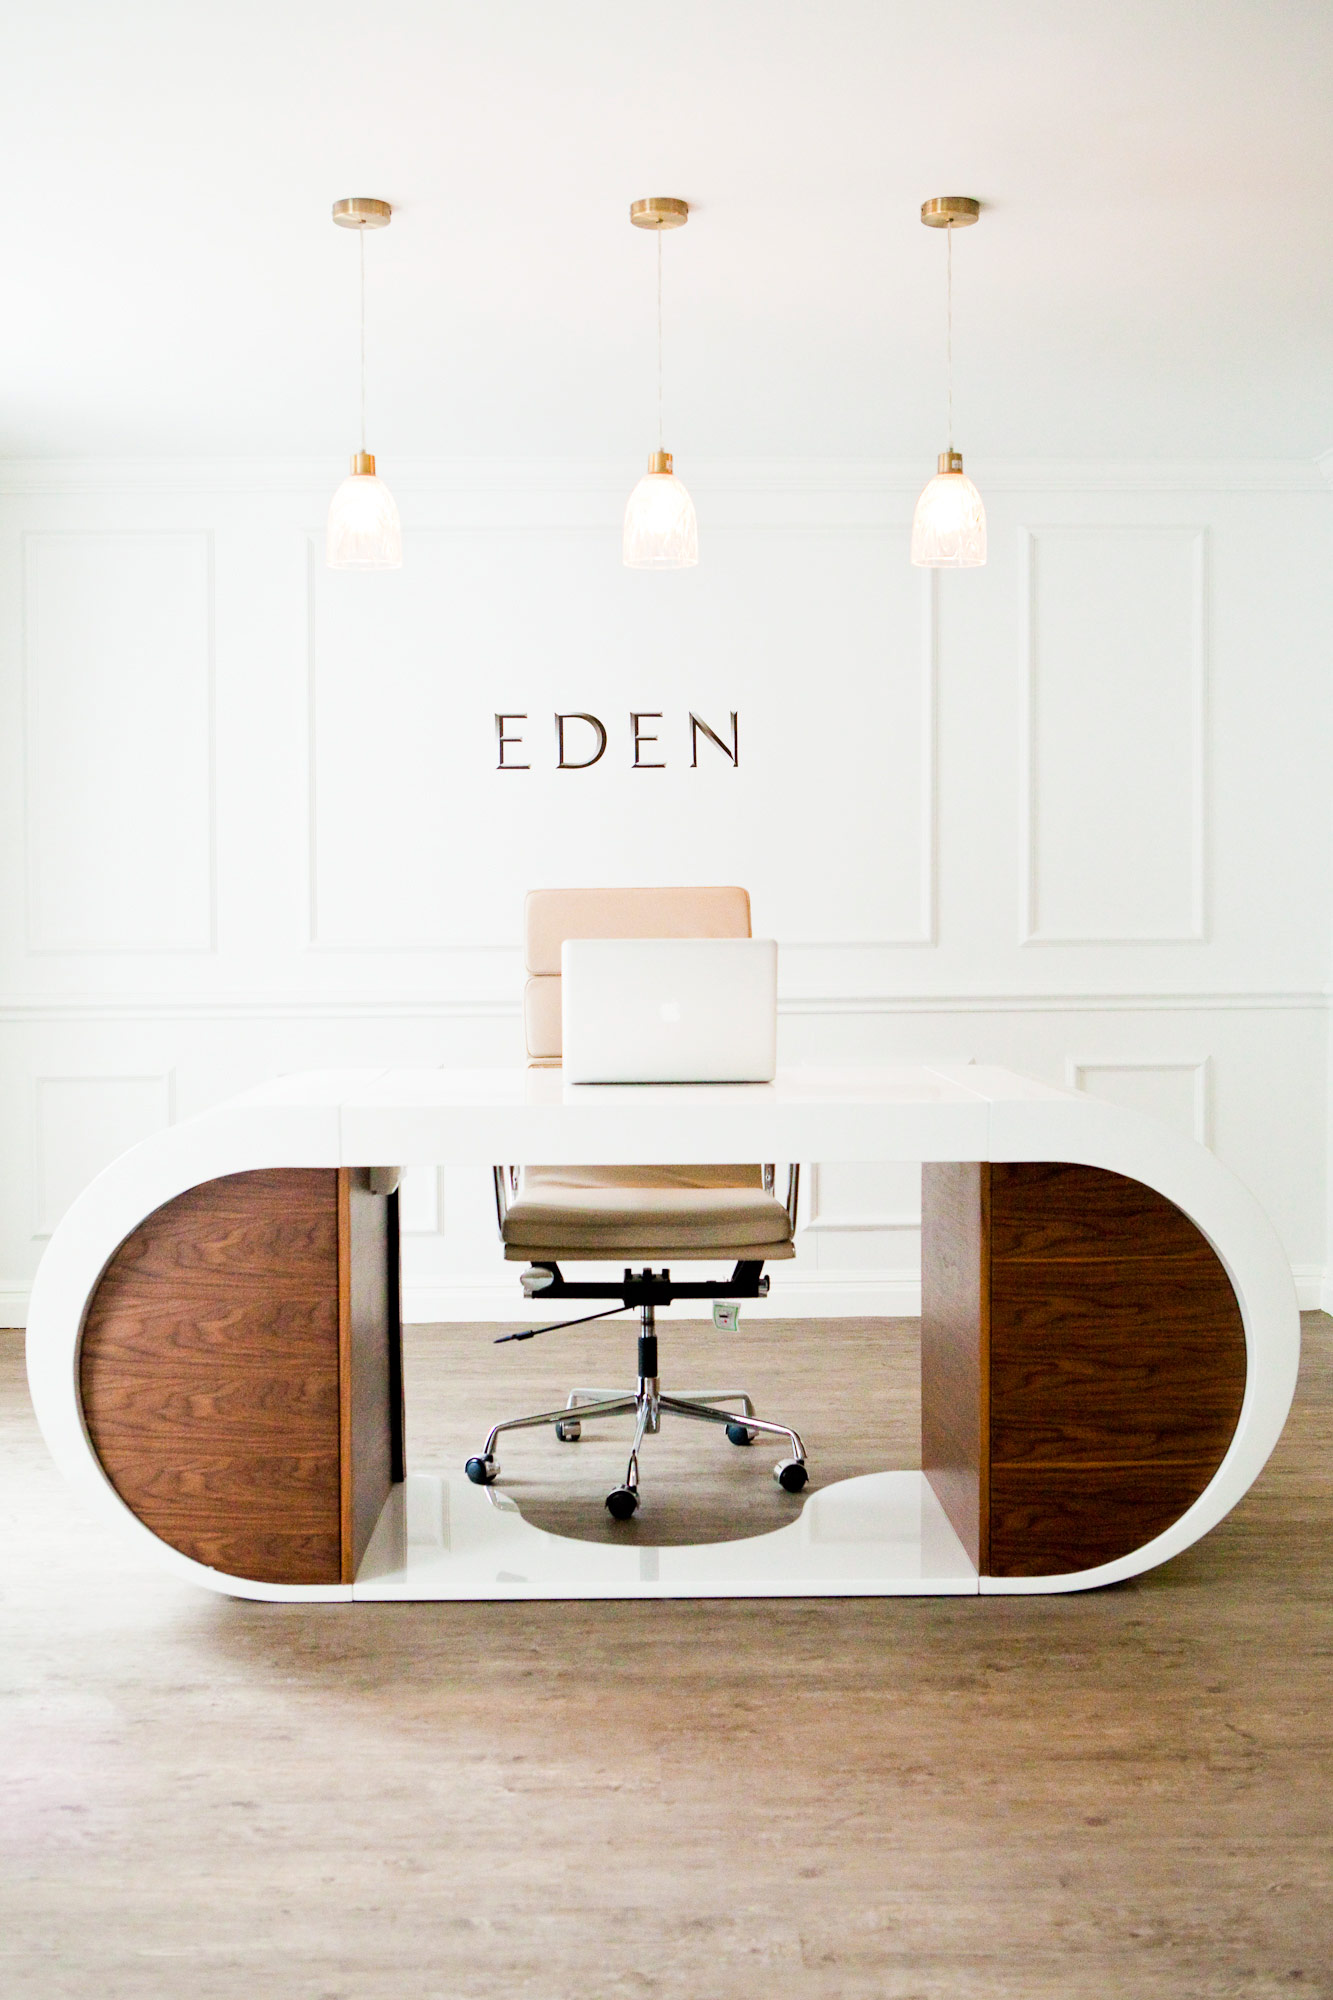 eden office